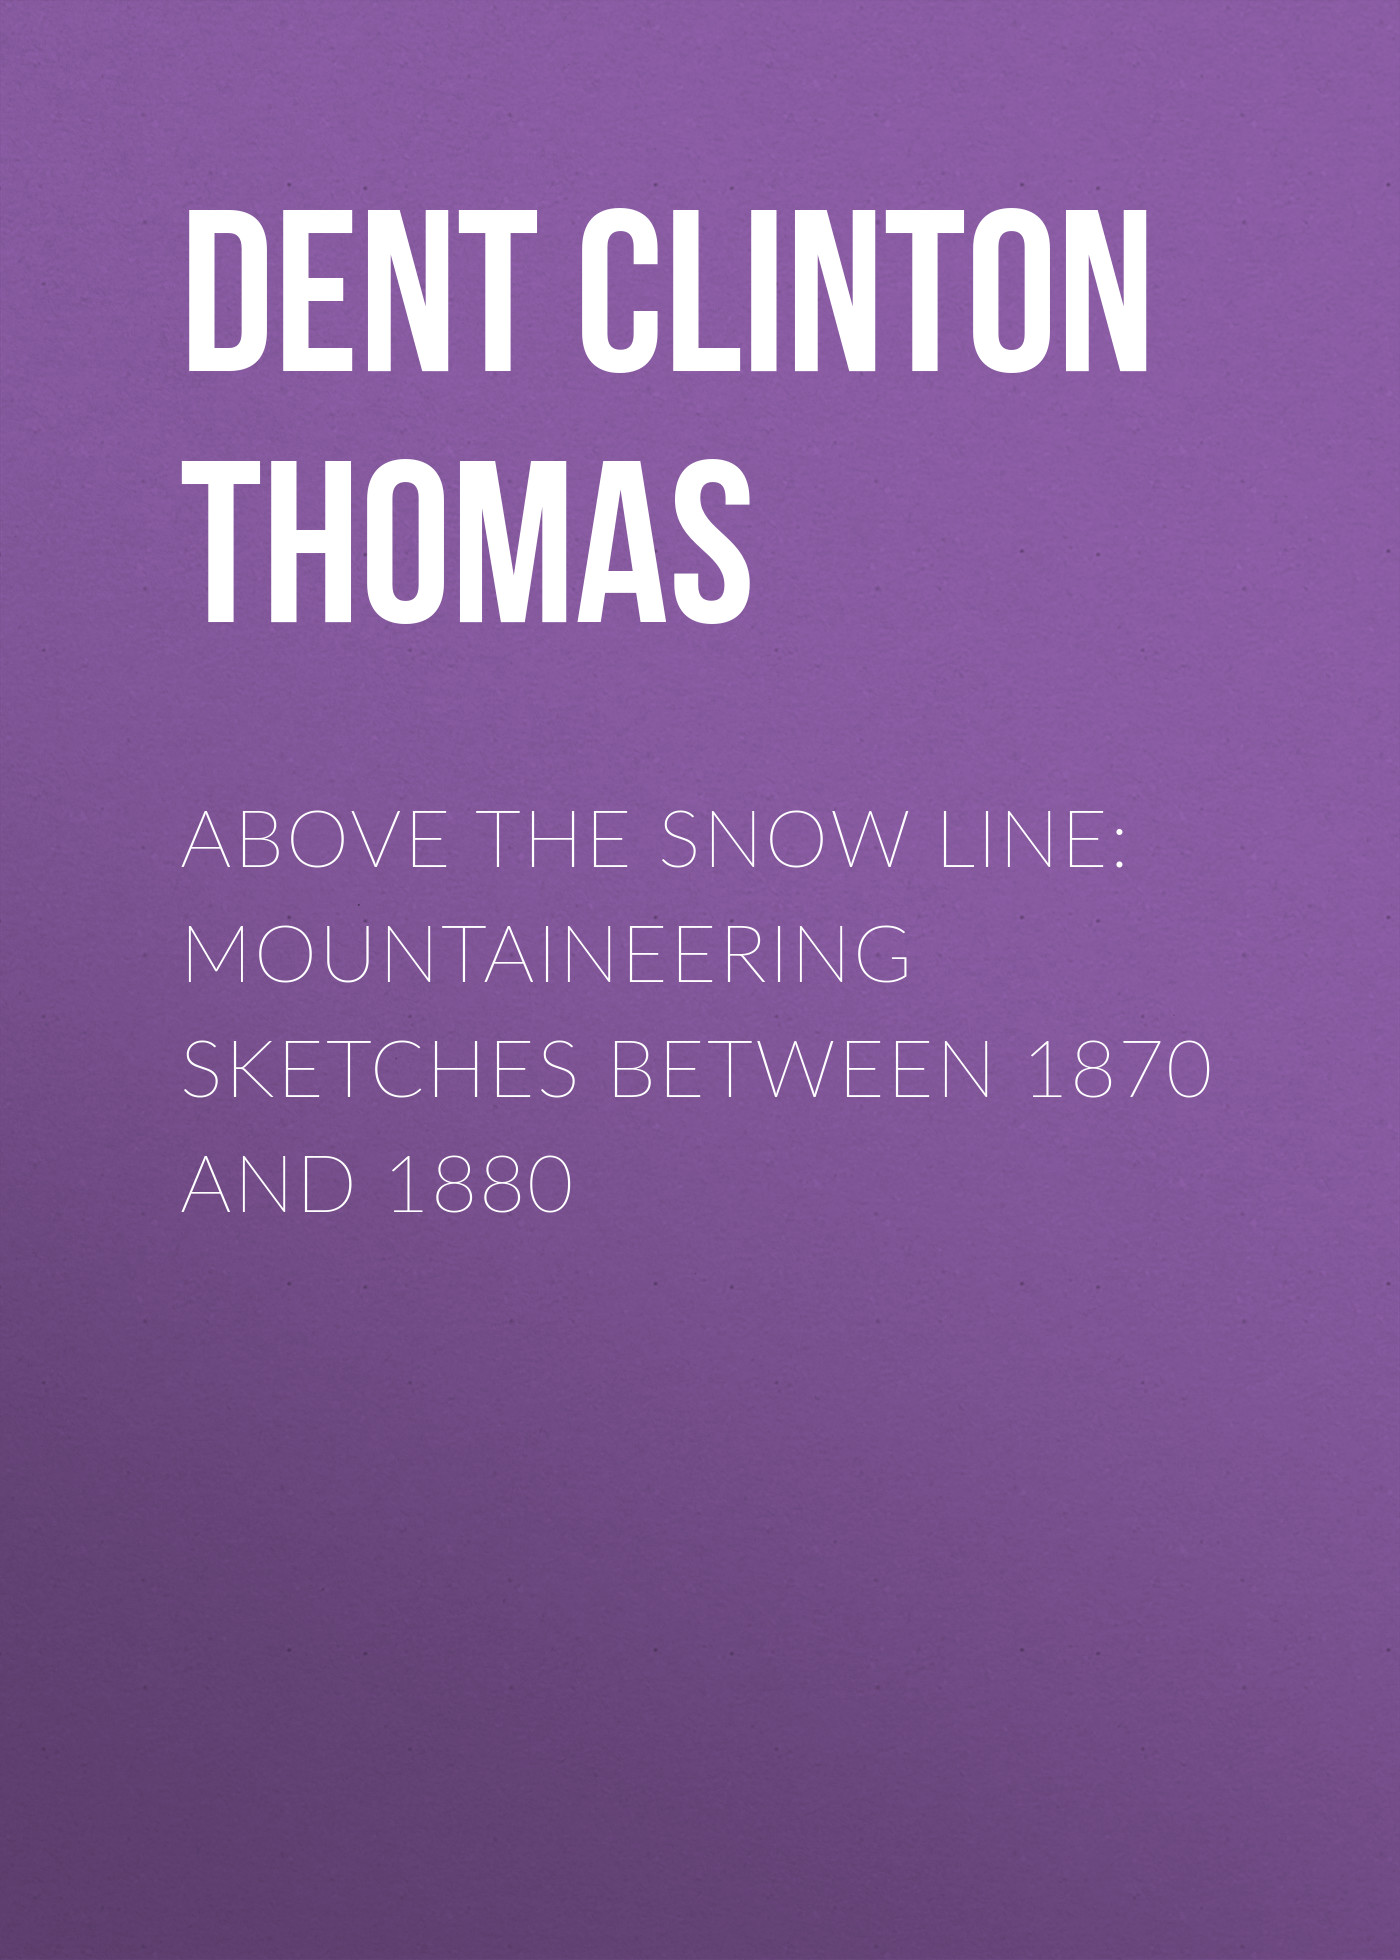 Dent Clinton Thomas Above the Snow Line: Mountaineering Sketches Between 1870 and 1880 sketches in lavender blue and green